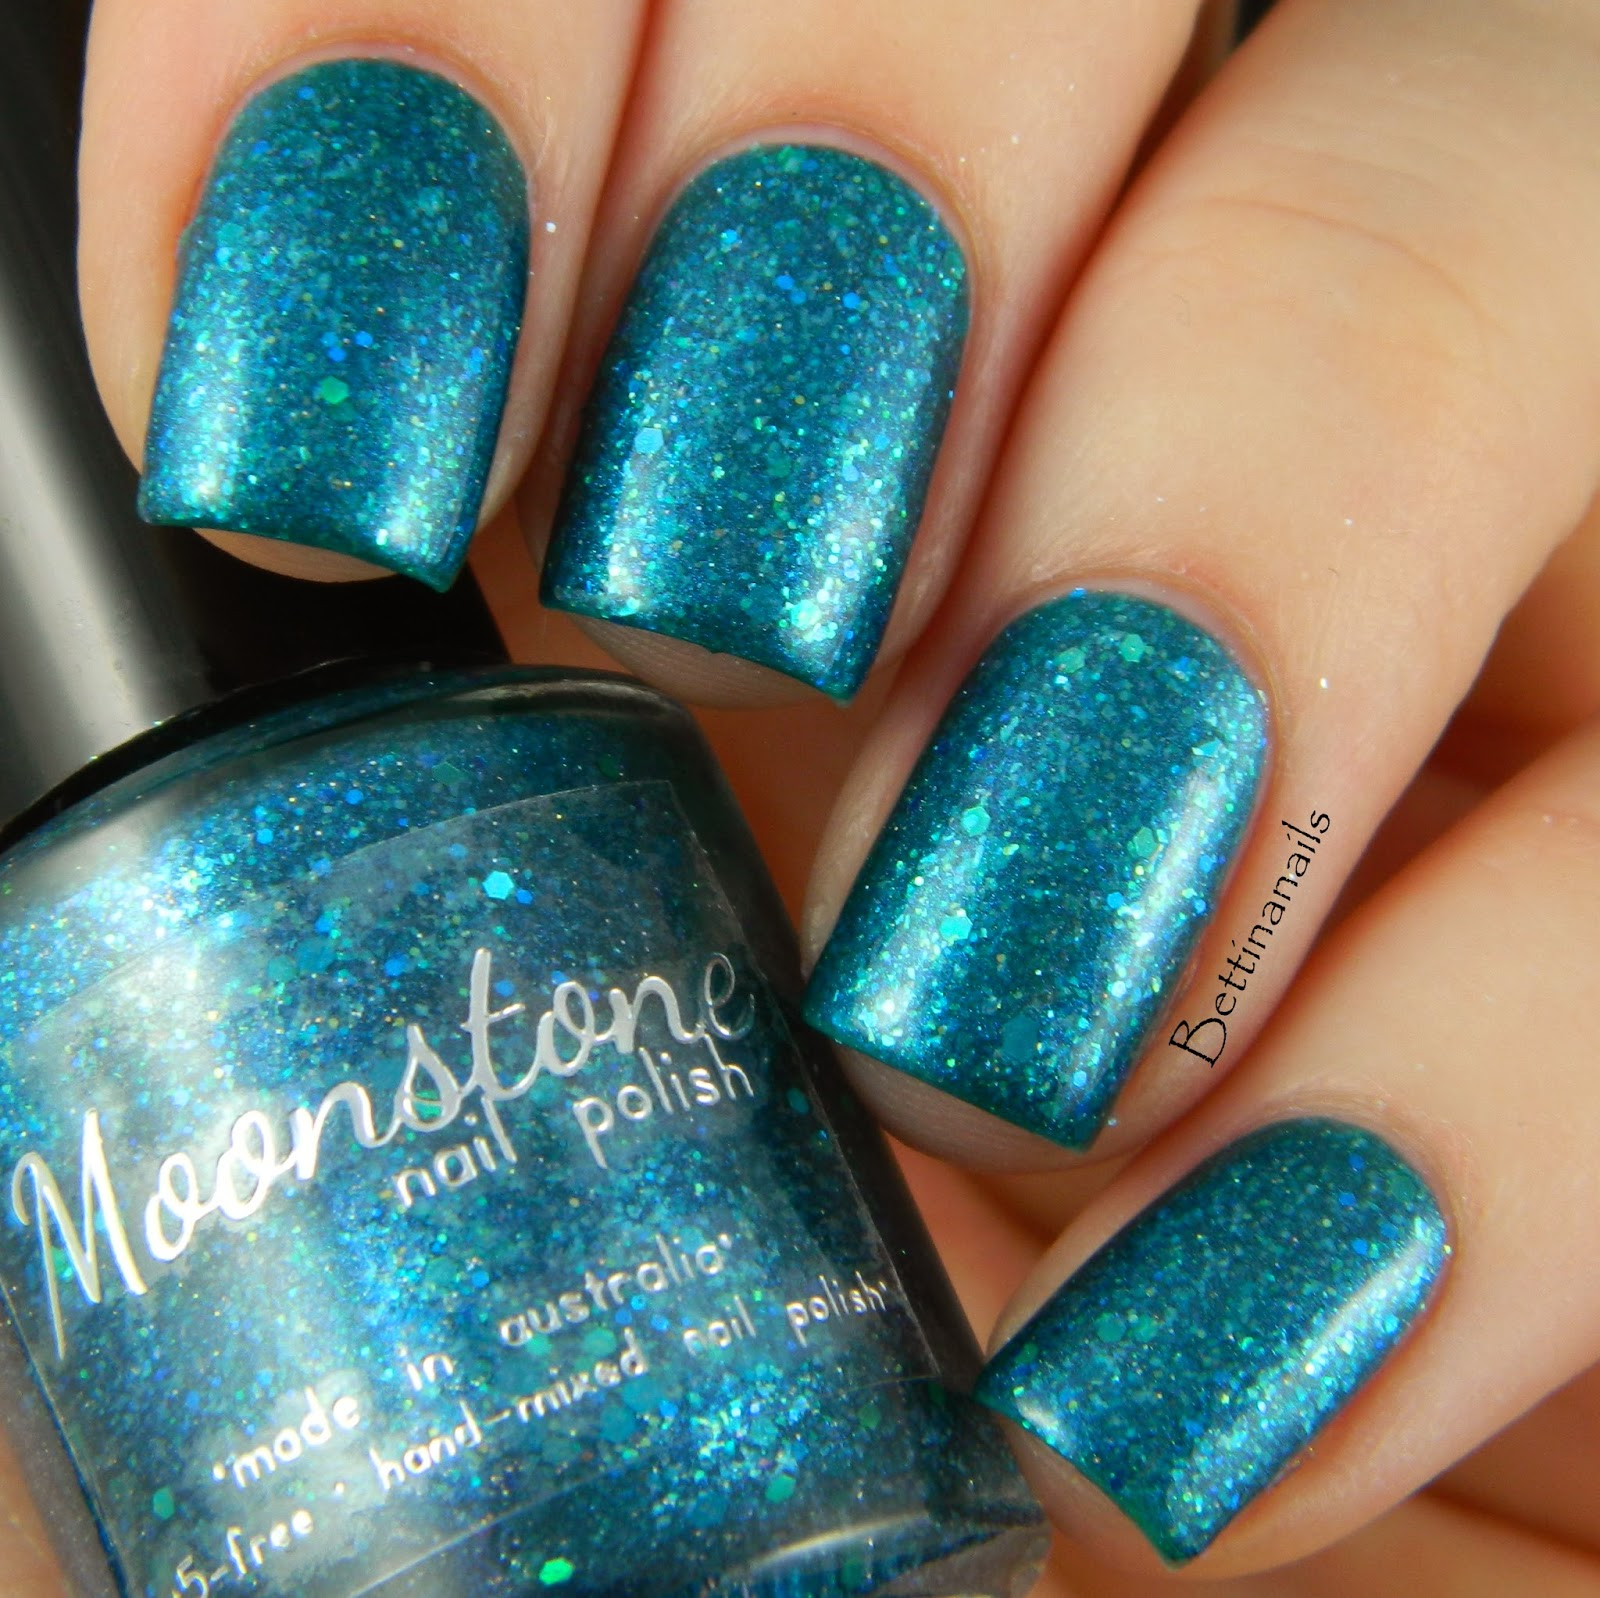 Bettina Nails: The Unearthed Collection by Moonstone Nail Polish